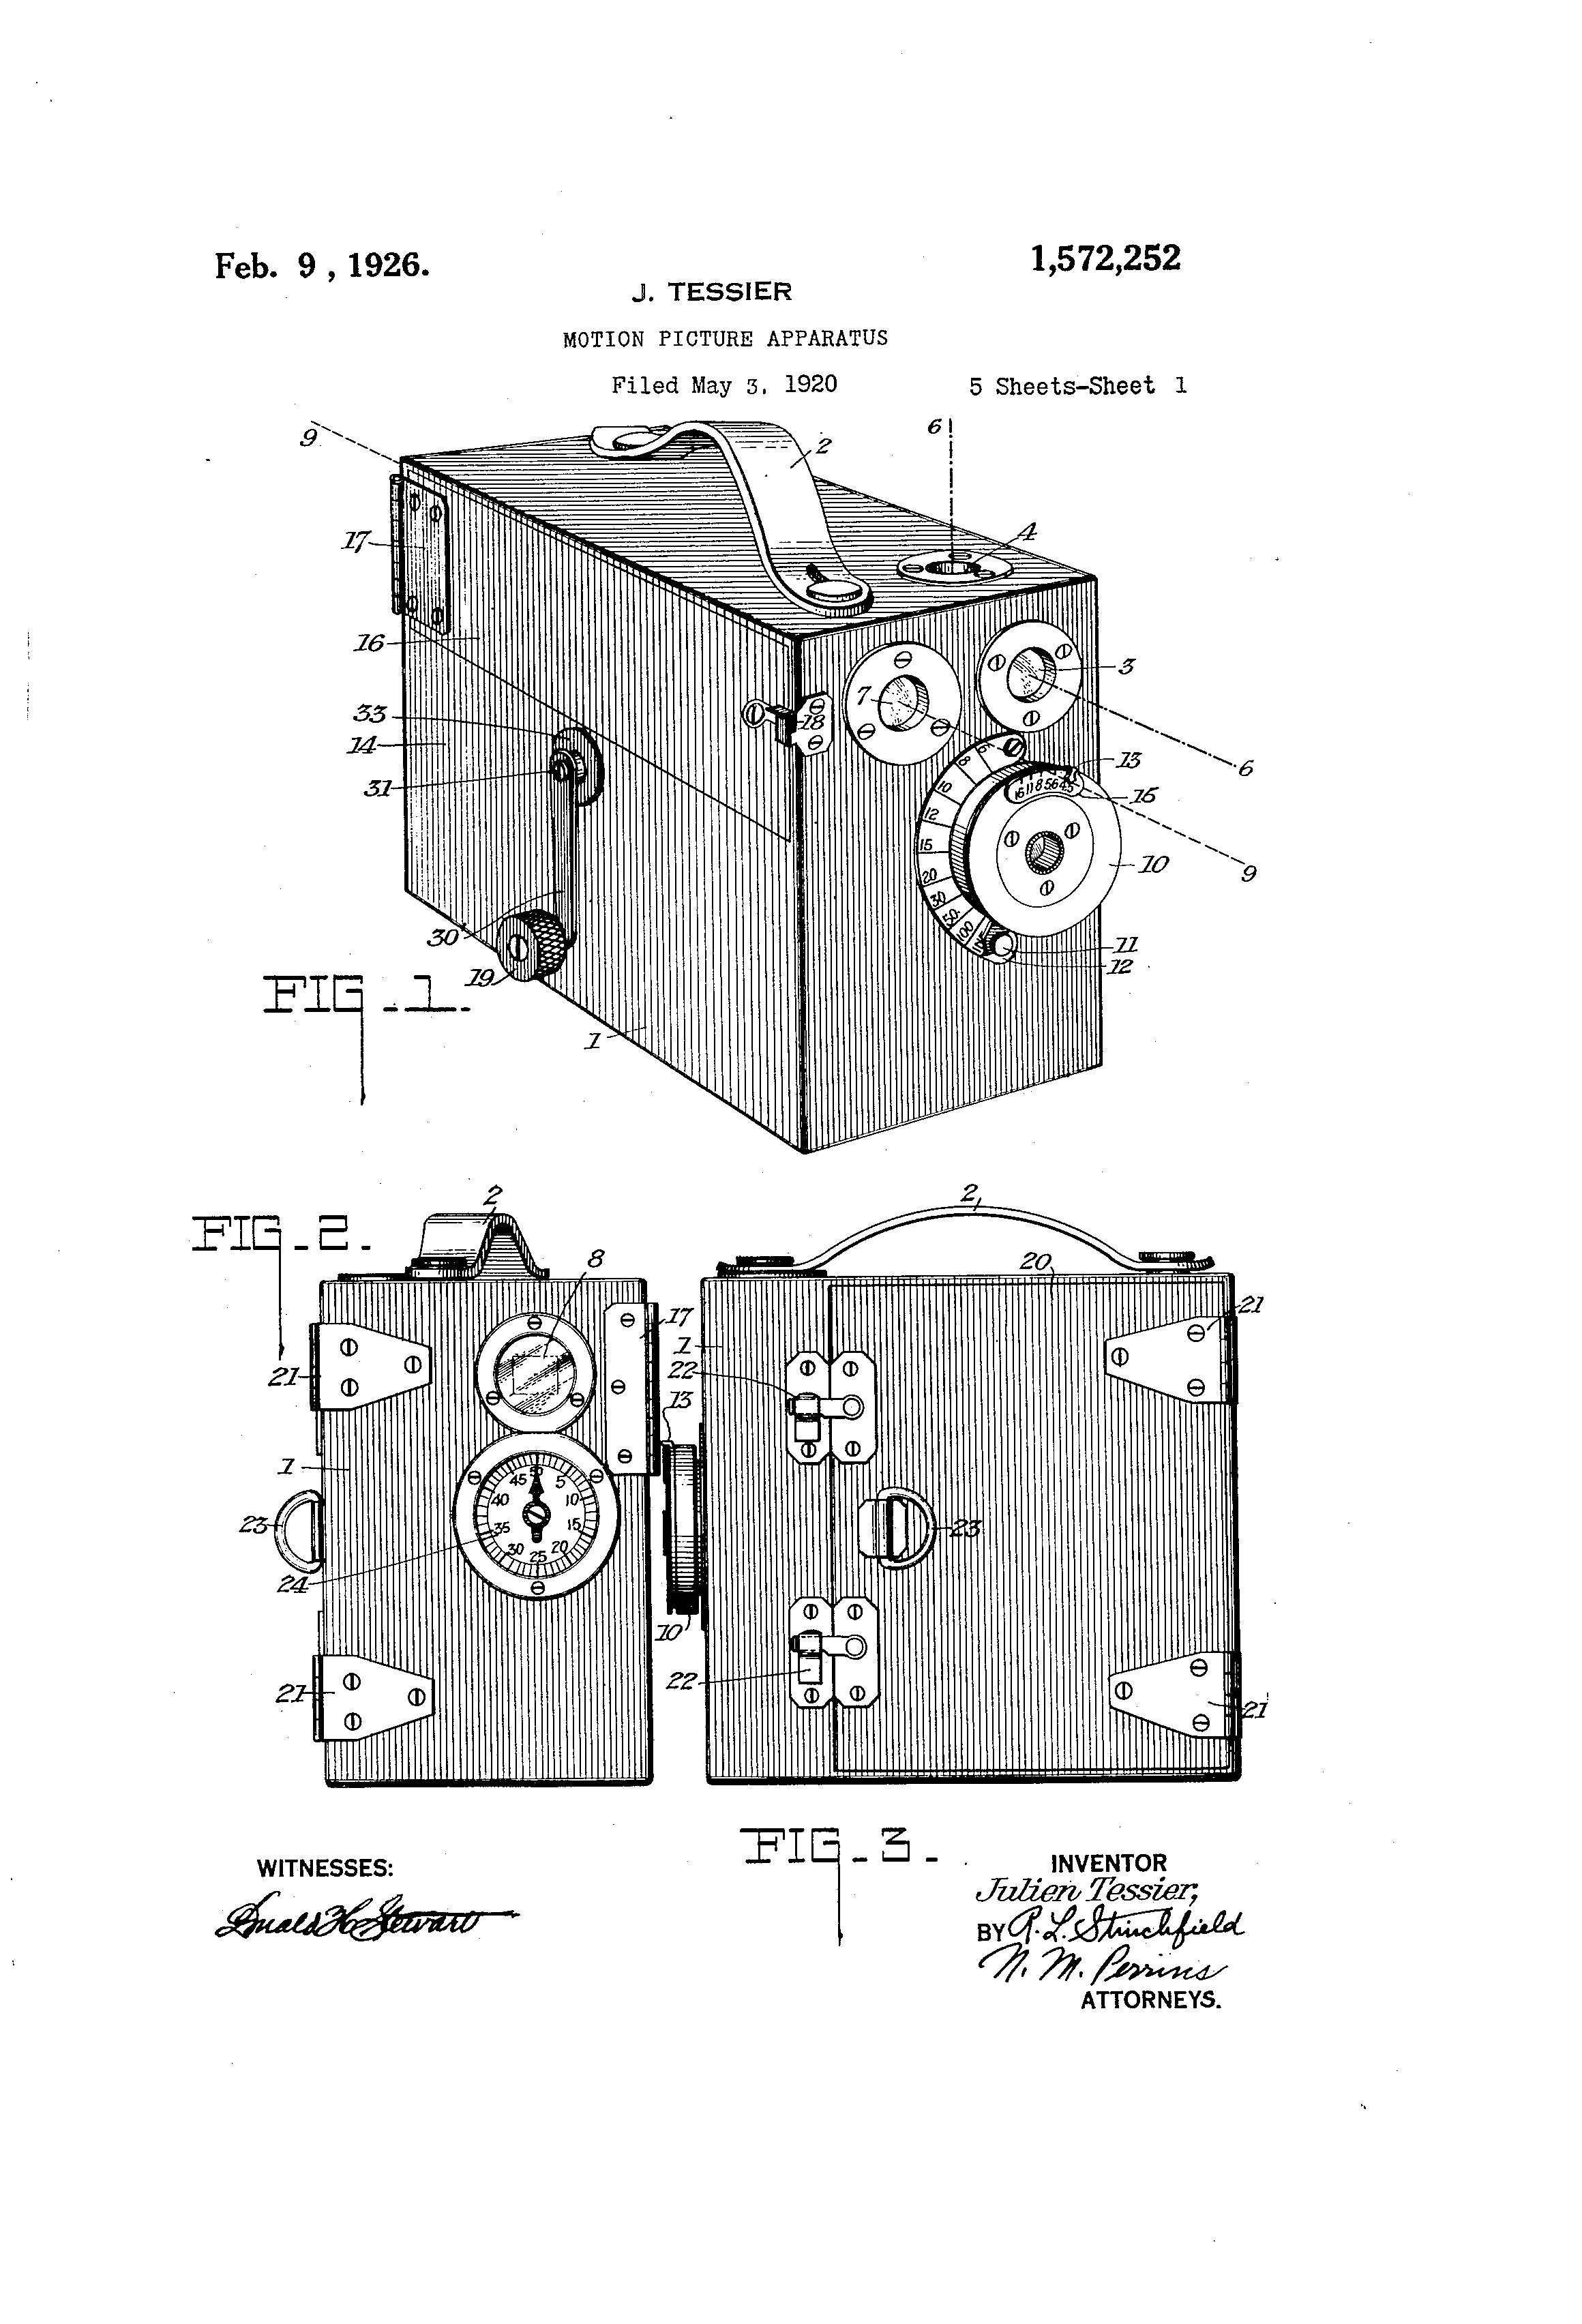 1920 05 03 US1572252 Motion Picture Apparatus